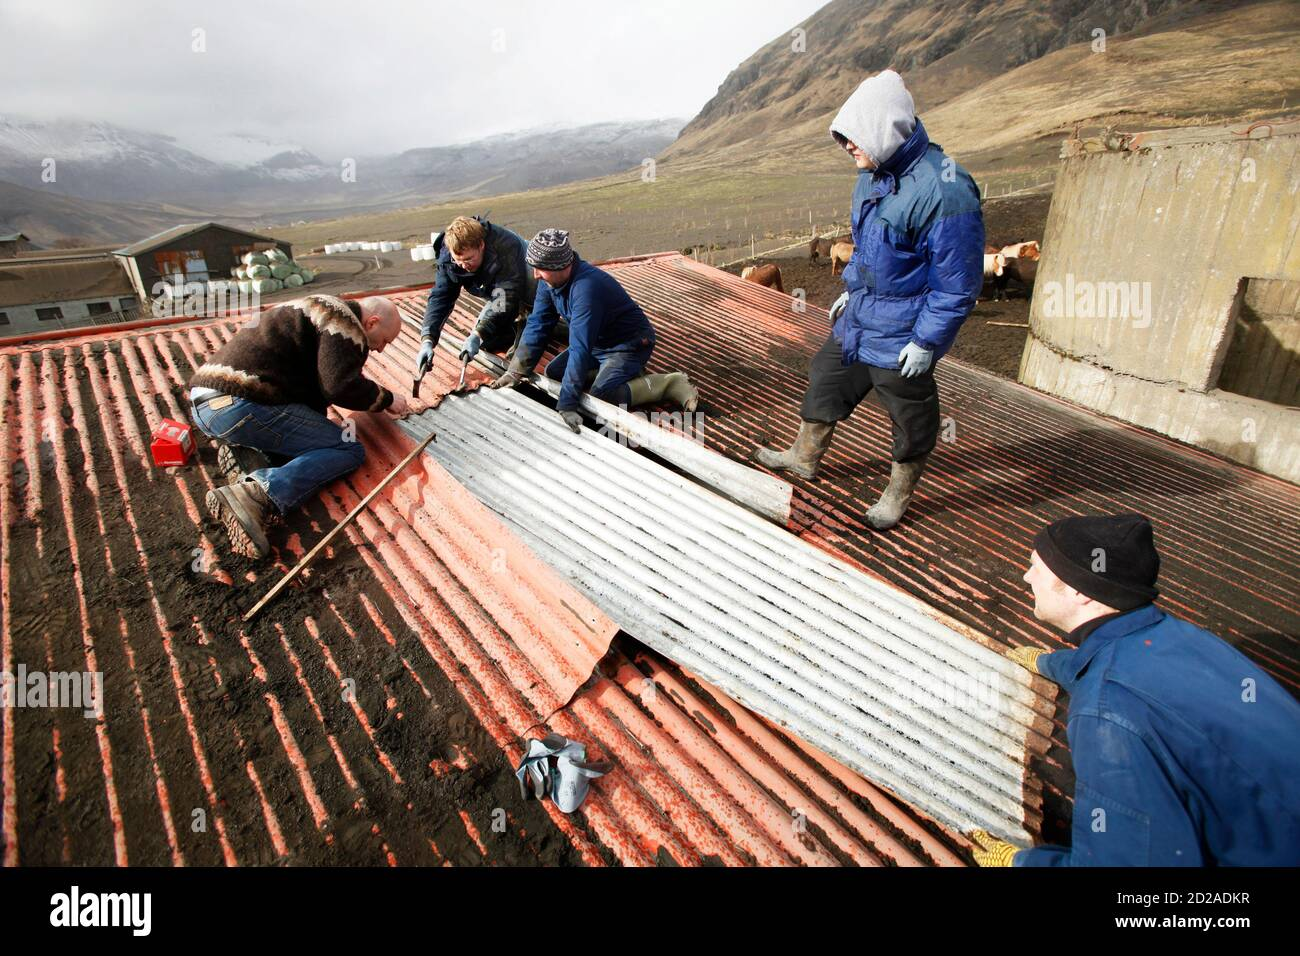 Farmers (from L to R) Hans Thorvaldsson, Benedikt Eythorsson, Bjarni Thorvaldsson, Thorgrimur Bjarnason, and Arni Bjarnasson repair a hole on a barn roof as they work to clean off volcanic ash that has accumulated from an erupting volcano near Eyjafjallajokull April 18, 2010.  REUTERS/Lucas Jackson (ICELAND - Tags: DISASTER ENVIRONMENT) Stock Photo